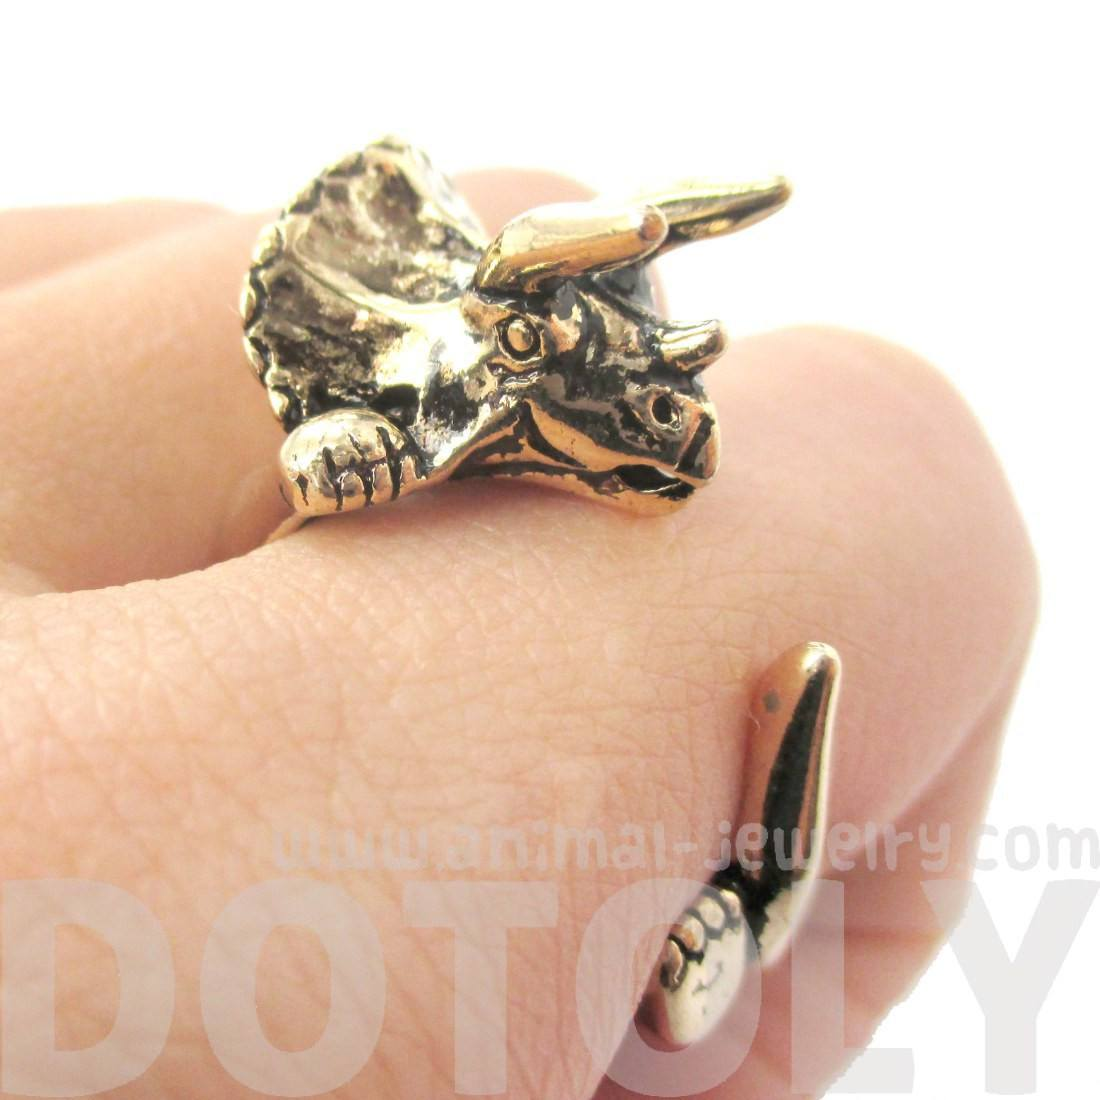 Triceratops Dinosaur Shaped Animal Wrap Around Hug Ring in Shiny Gold